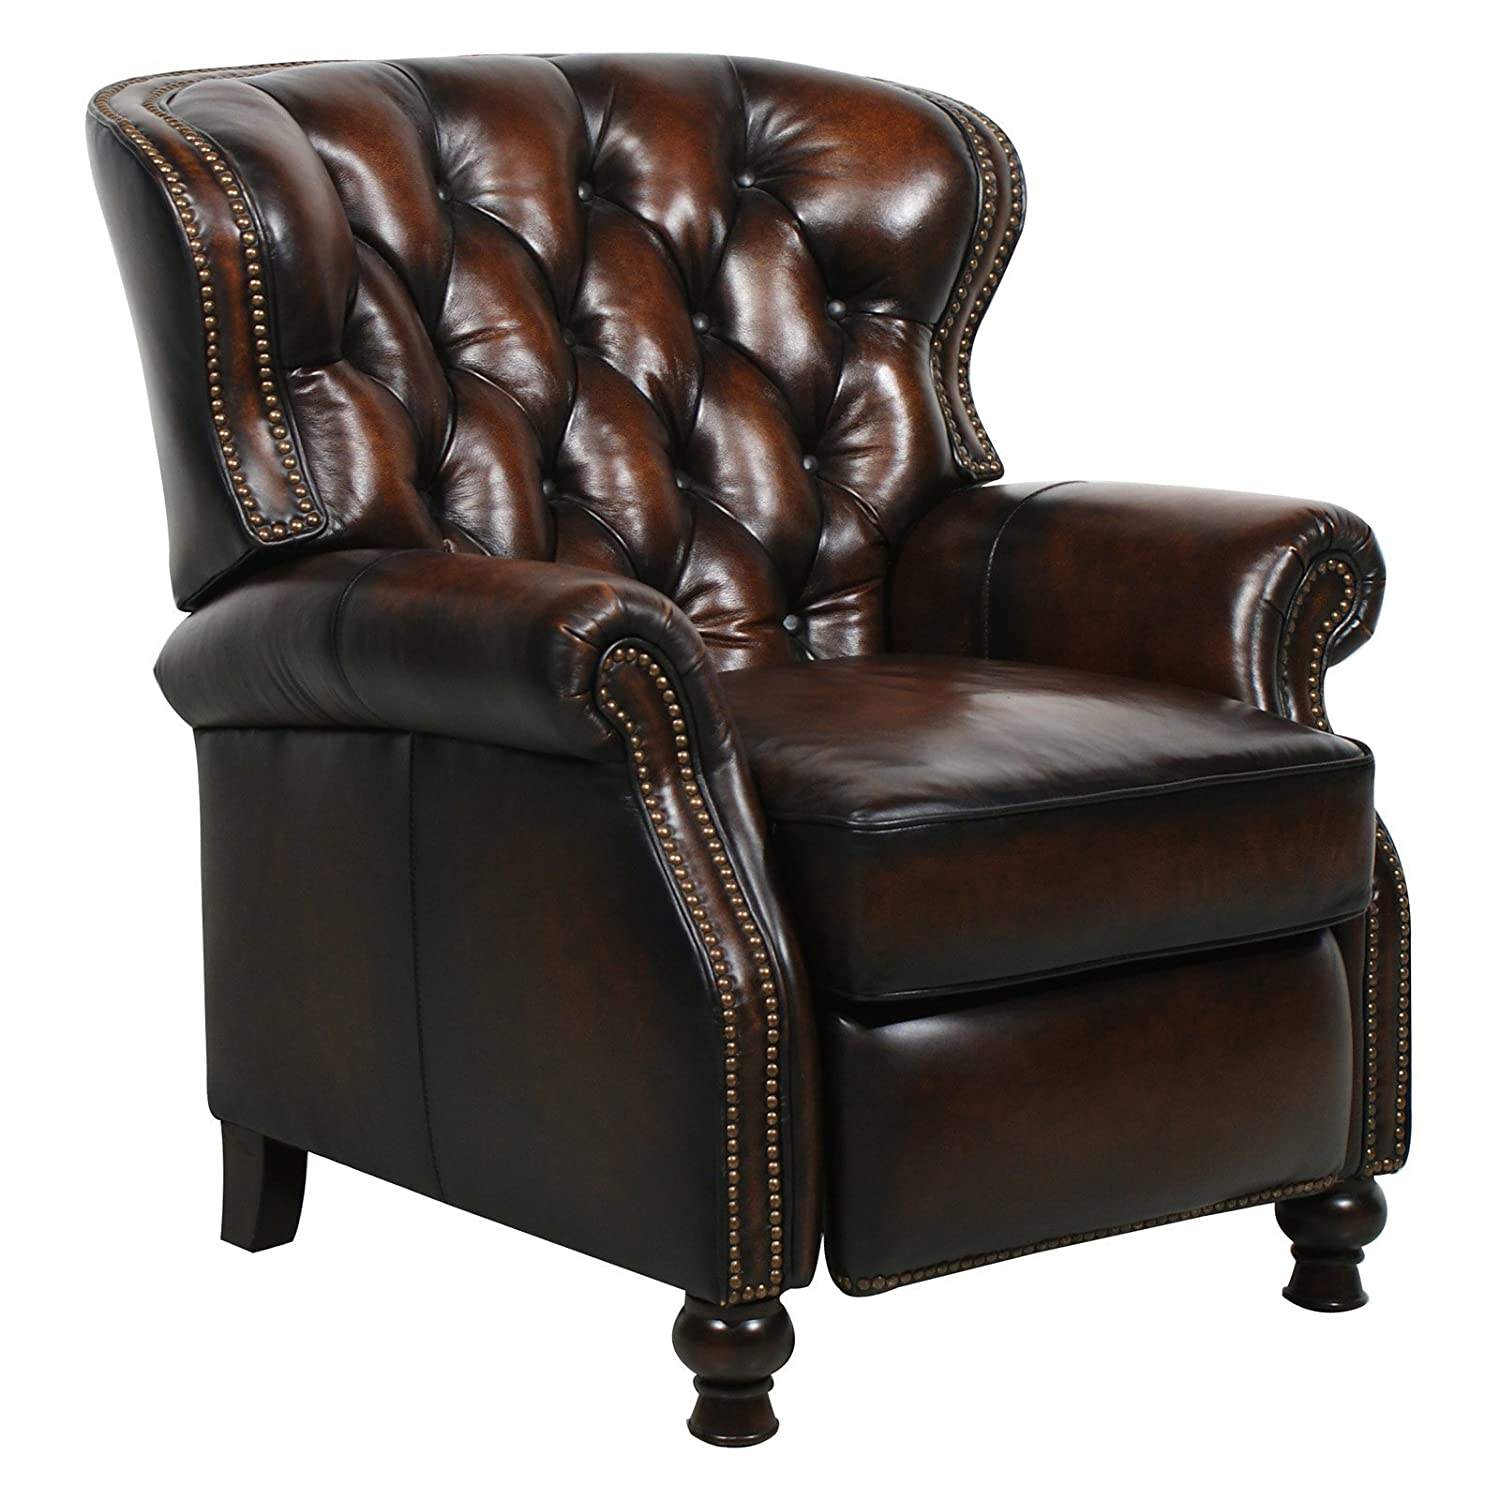 Charmant Amazon.com: Presidential Ll Top Grain Leather Chair Manual Recliner By  Barcalounger: Kitchen U0026 Dining